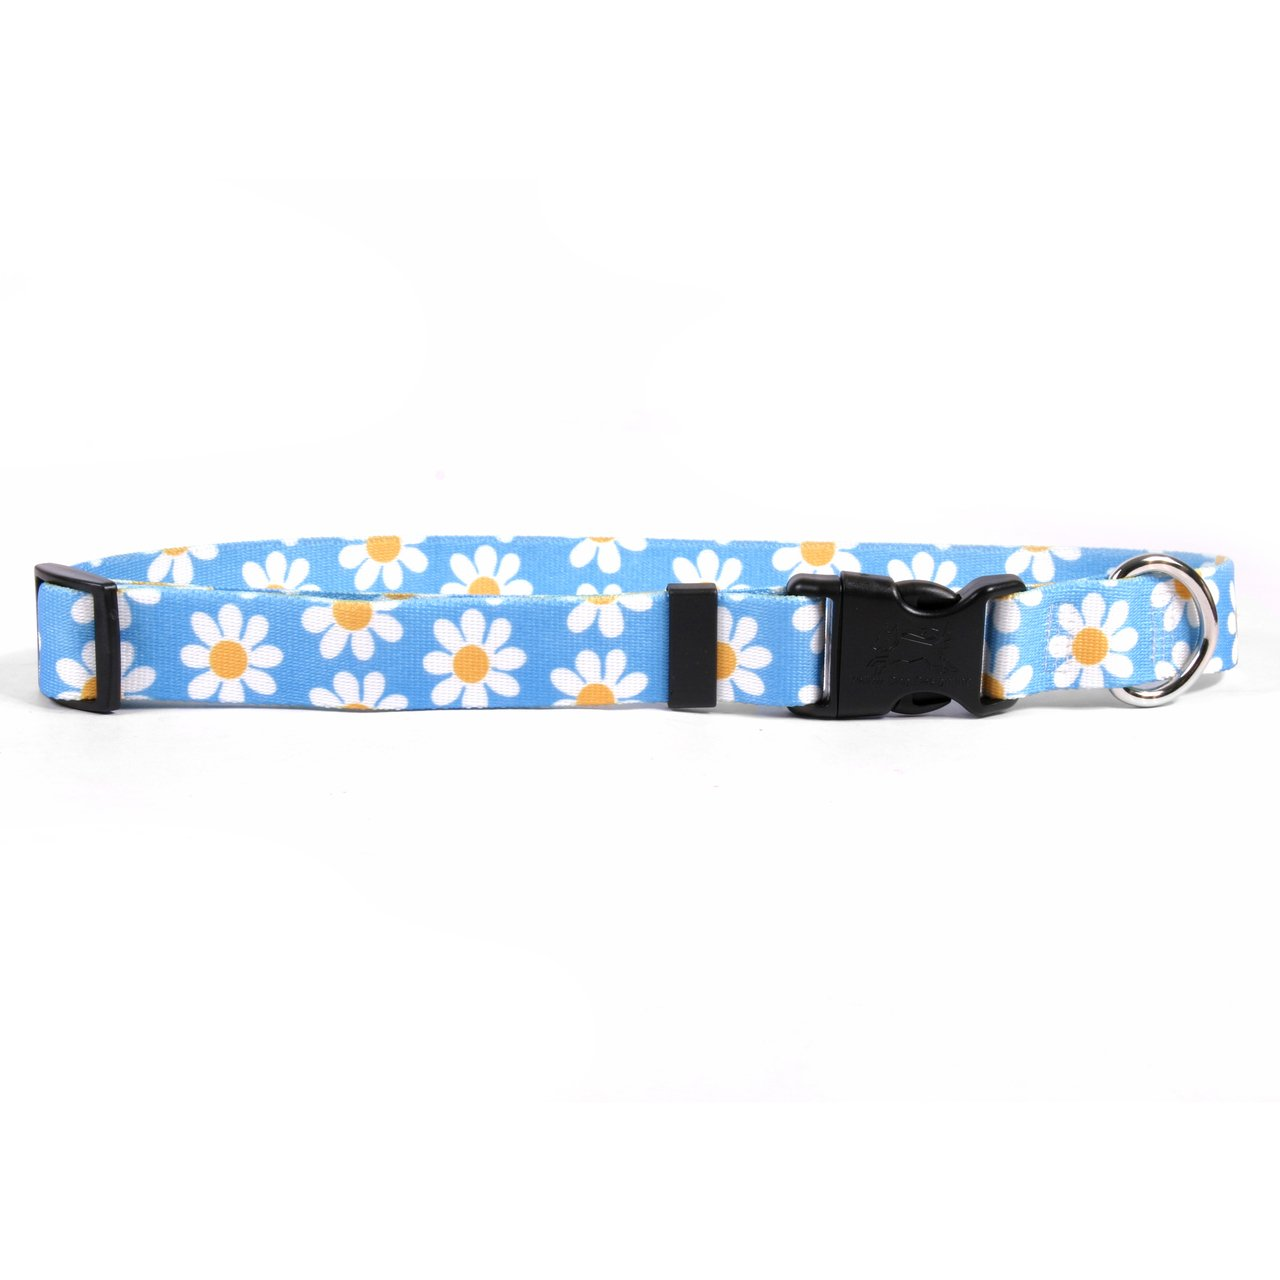 Yellow Dog Design Blue Daisy Dog Collar 3/4'' Wide and Fits Neck 10 to 14'', Small